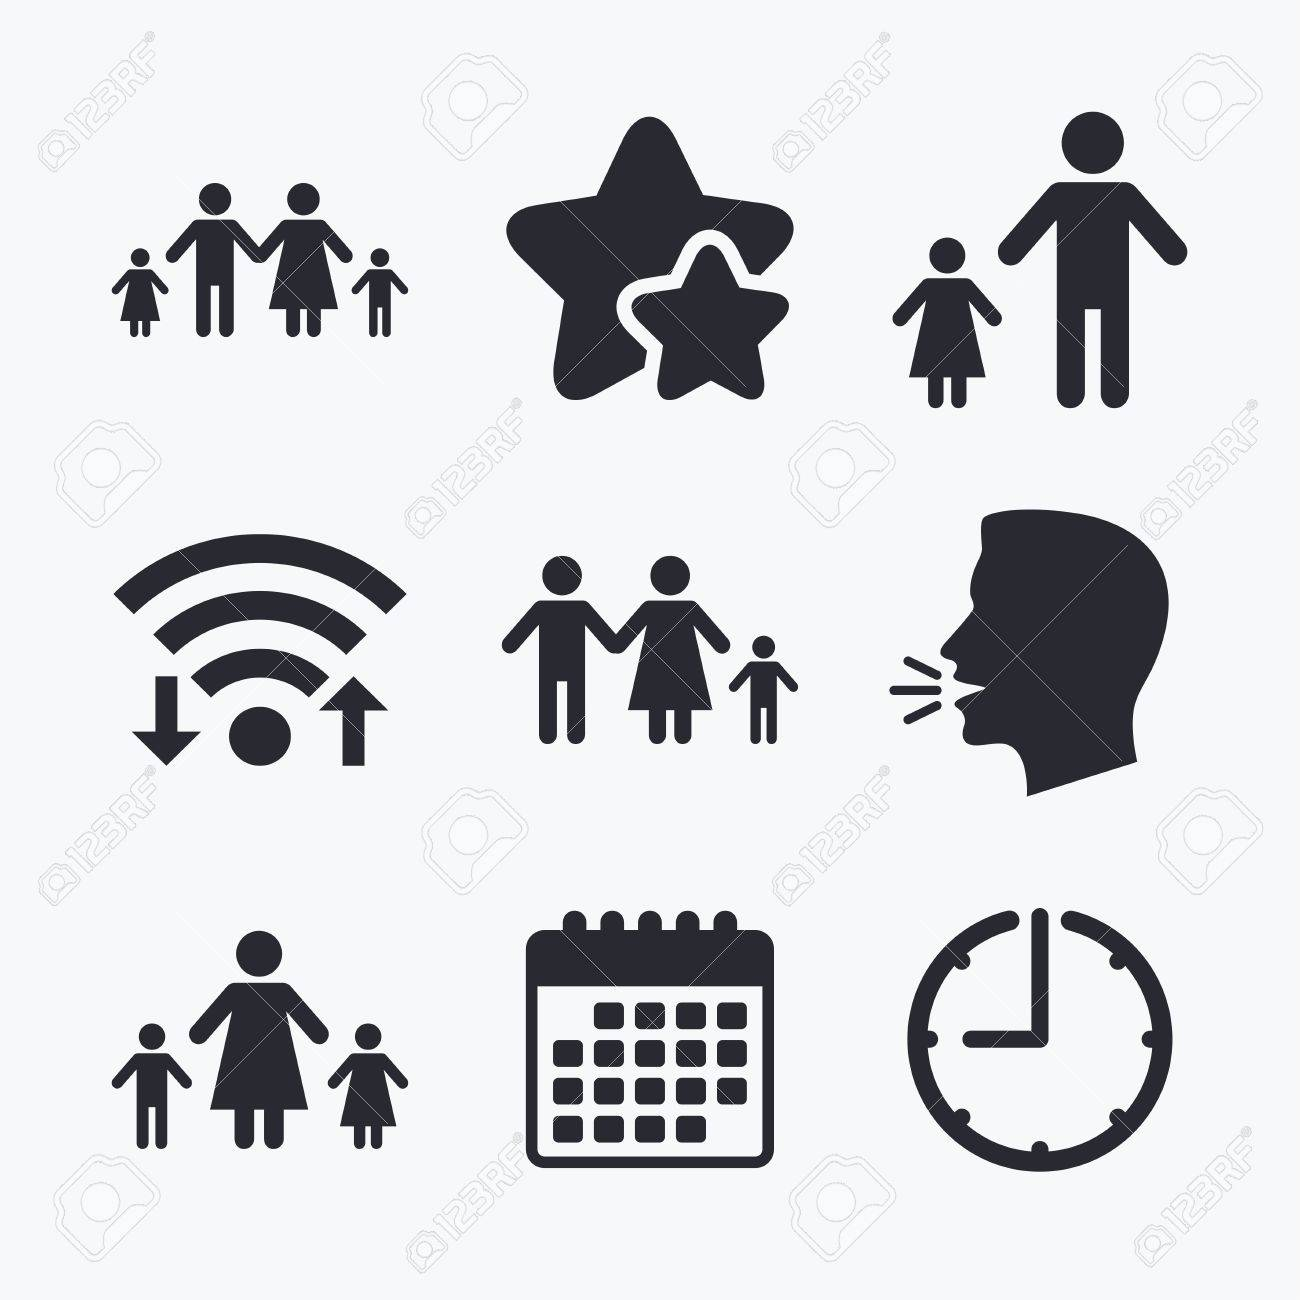 Family With Two Children Icon Parents And Kids Symbols One Parent Royalty Free Cliparts Vectors And Stock Illustration Image 62475747